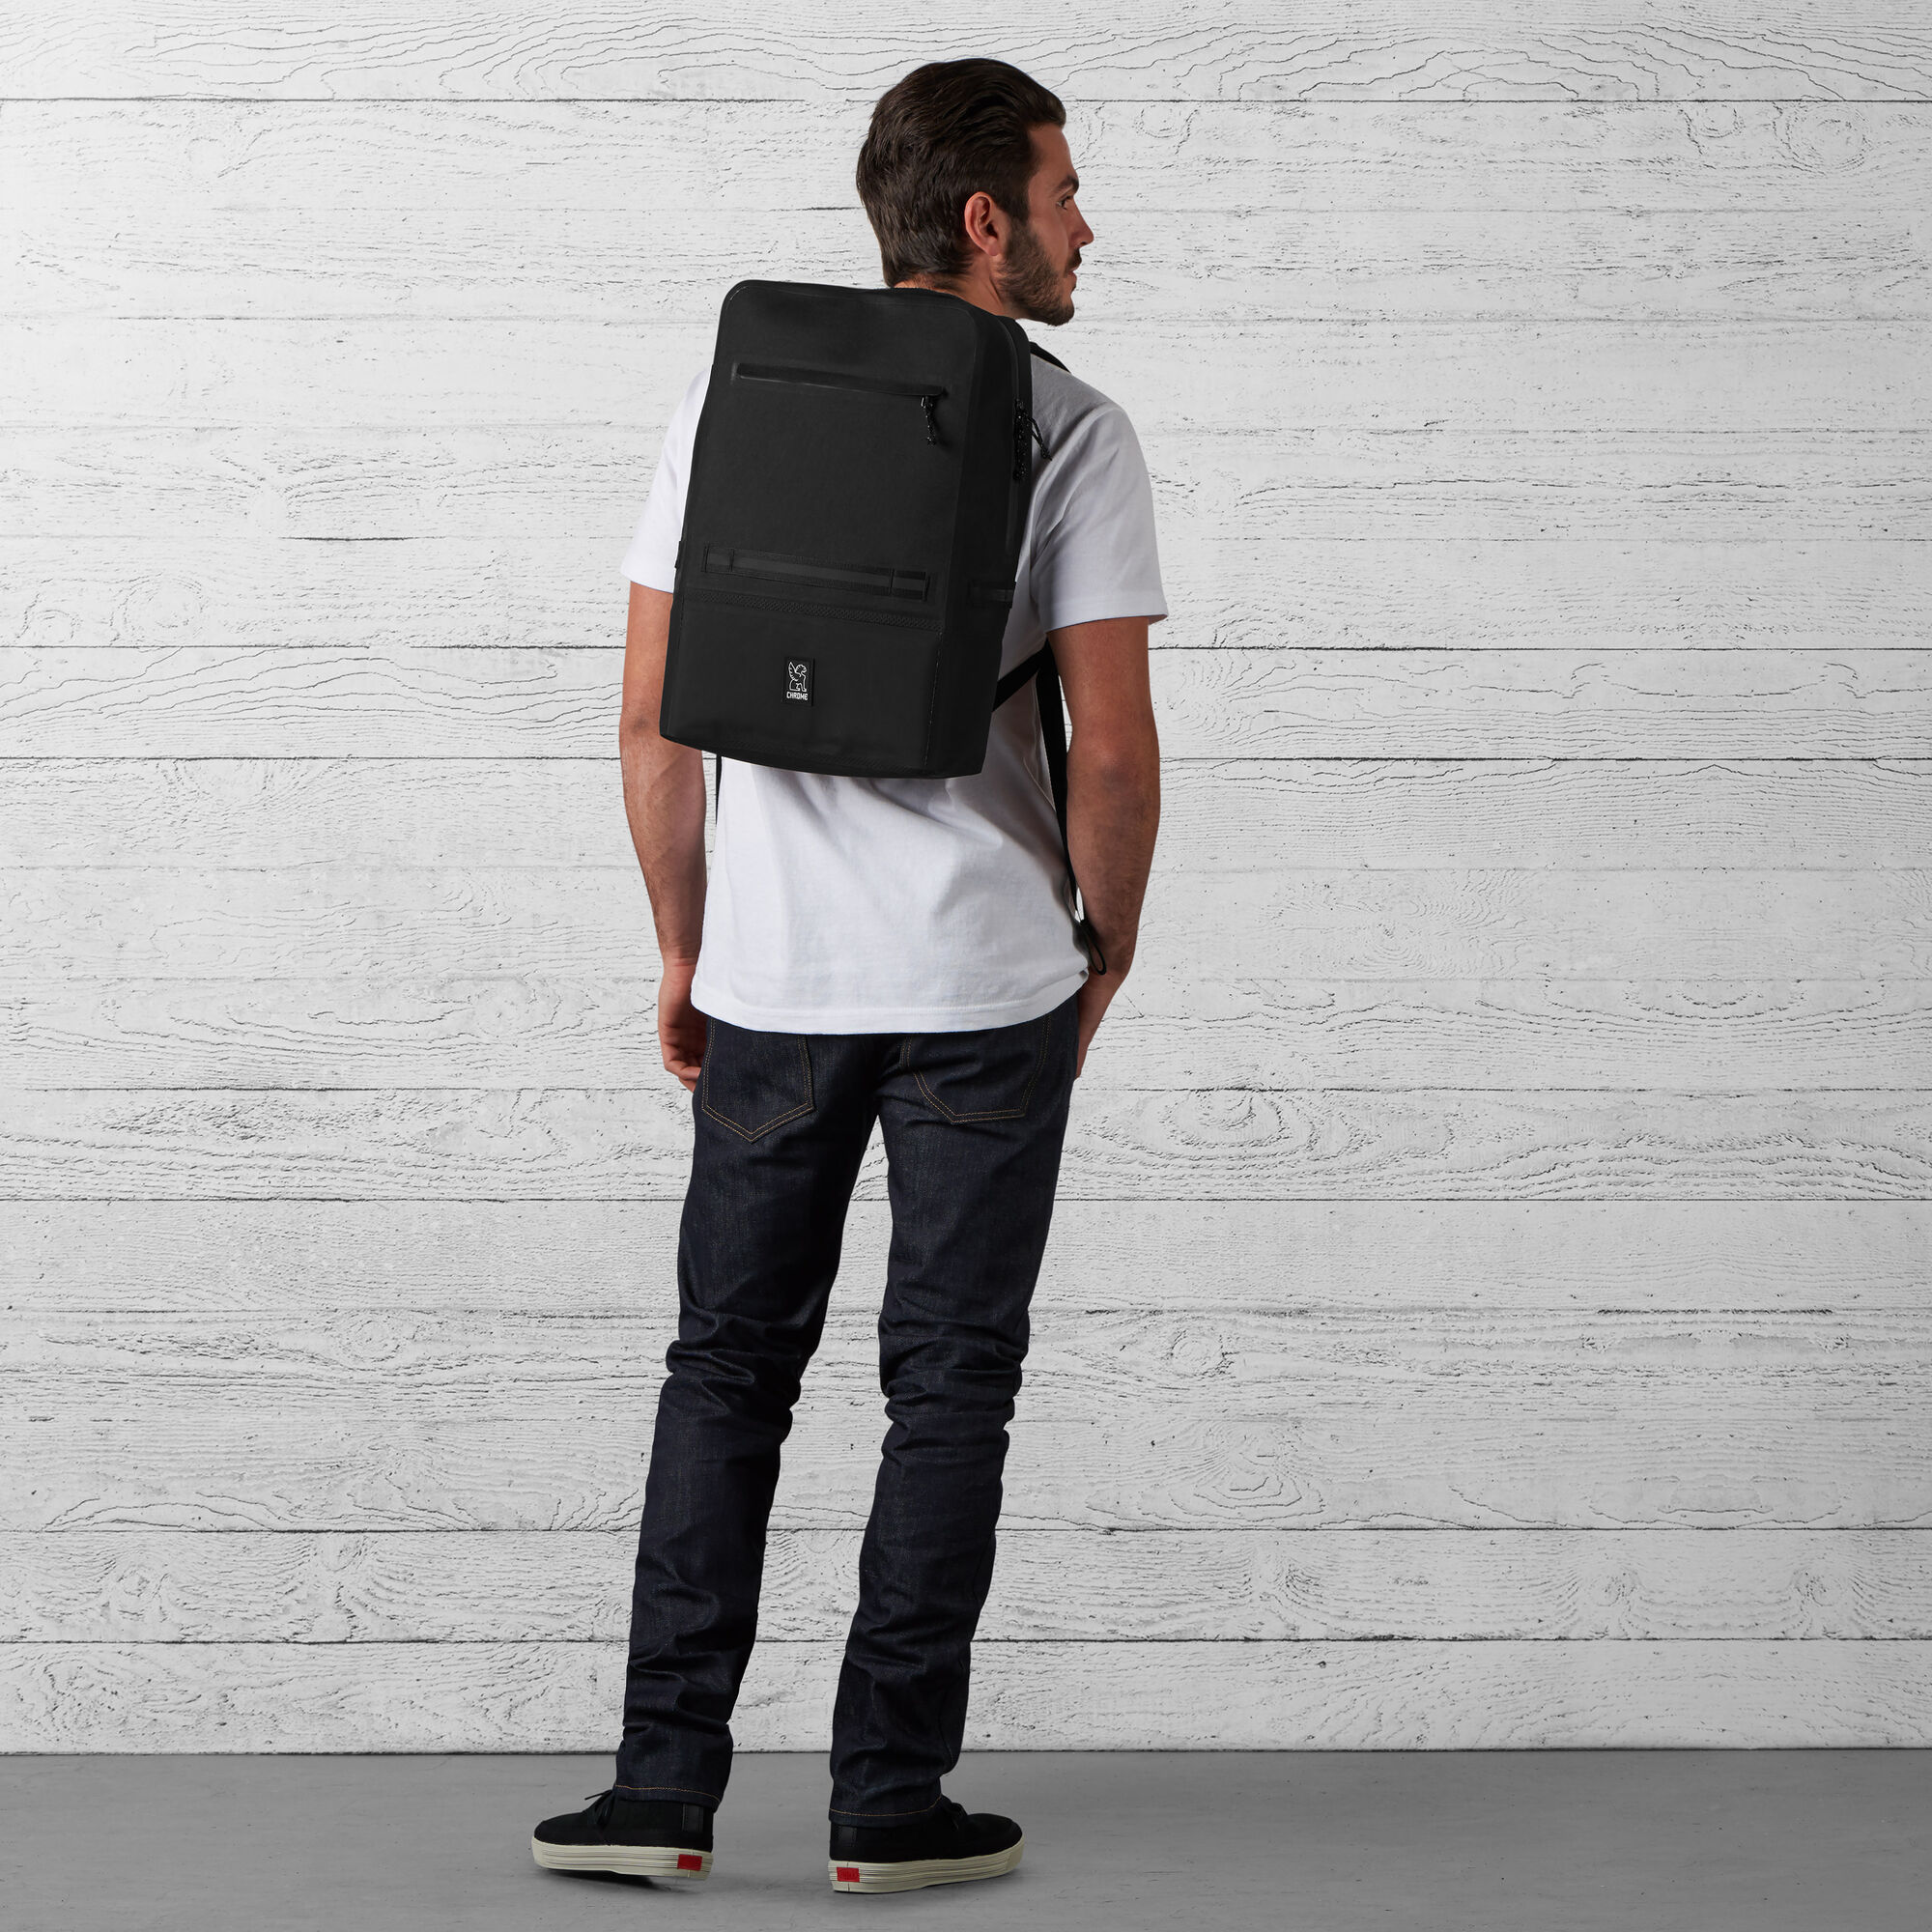 6c79191520 Urban Ex Daypack - Fits laptops up to 13